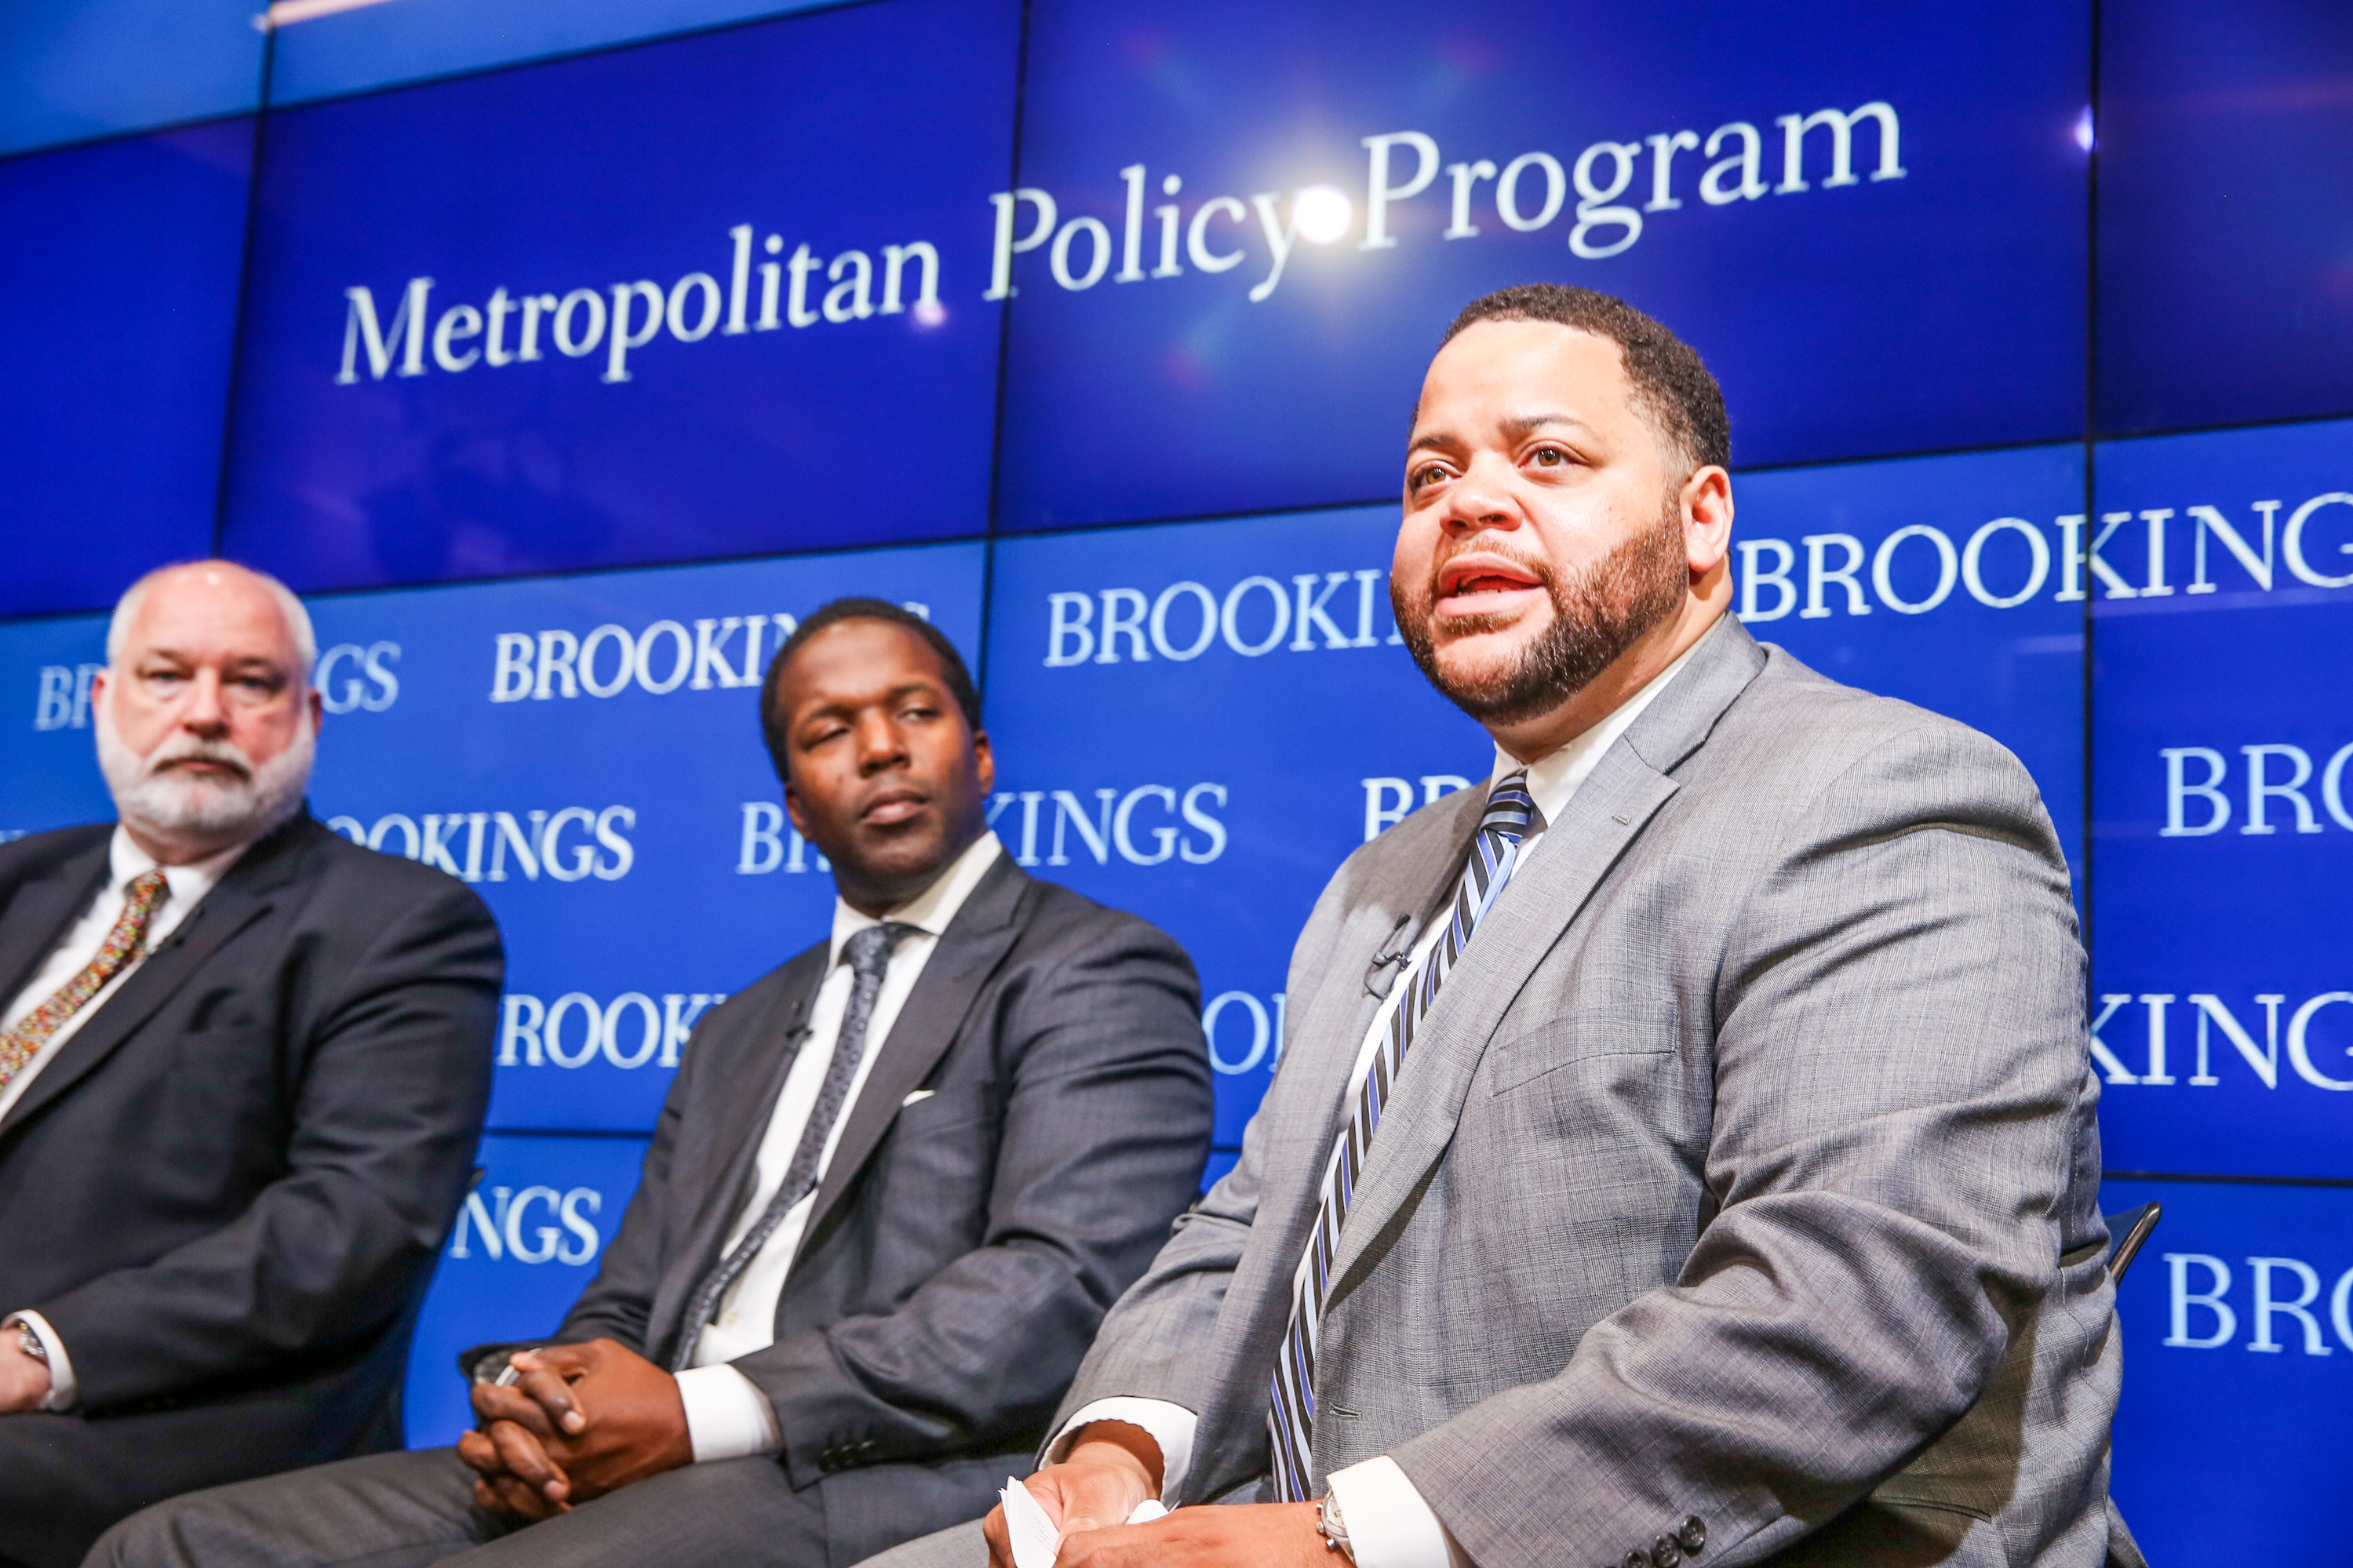 baltimore and beyond creating opportunity in places